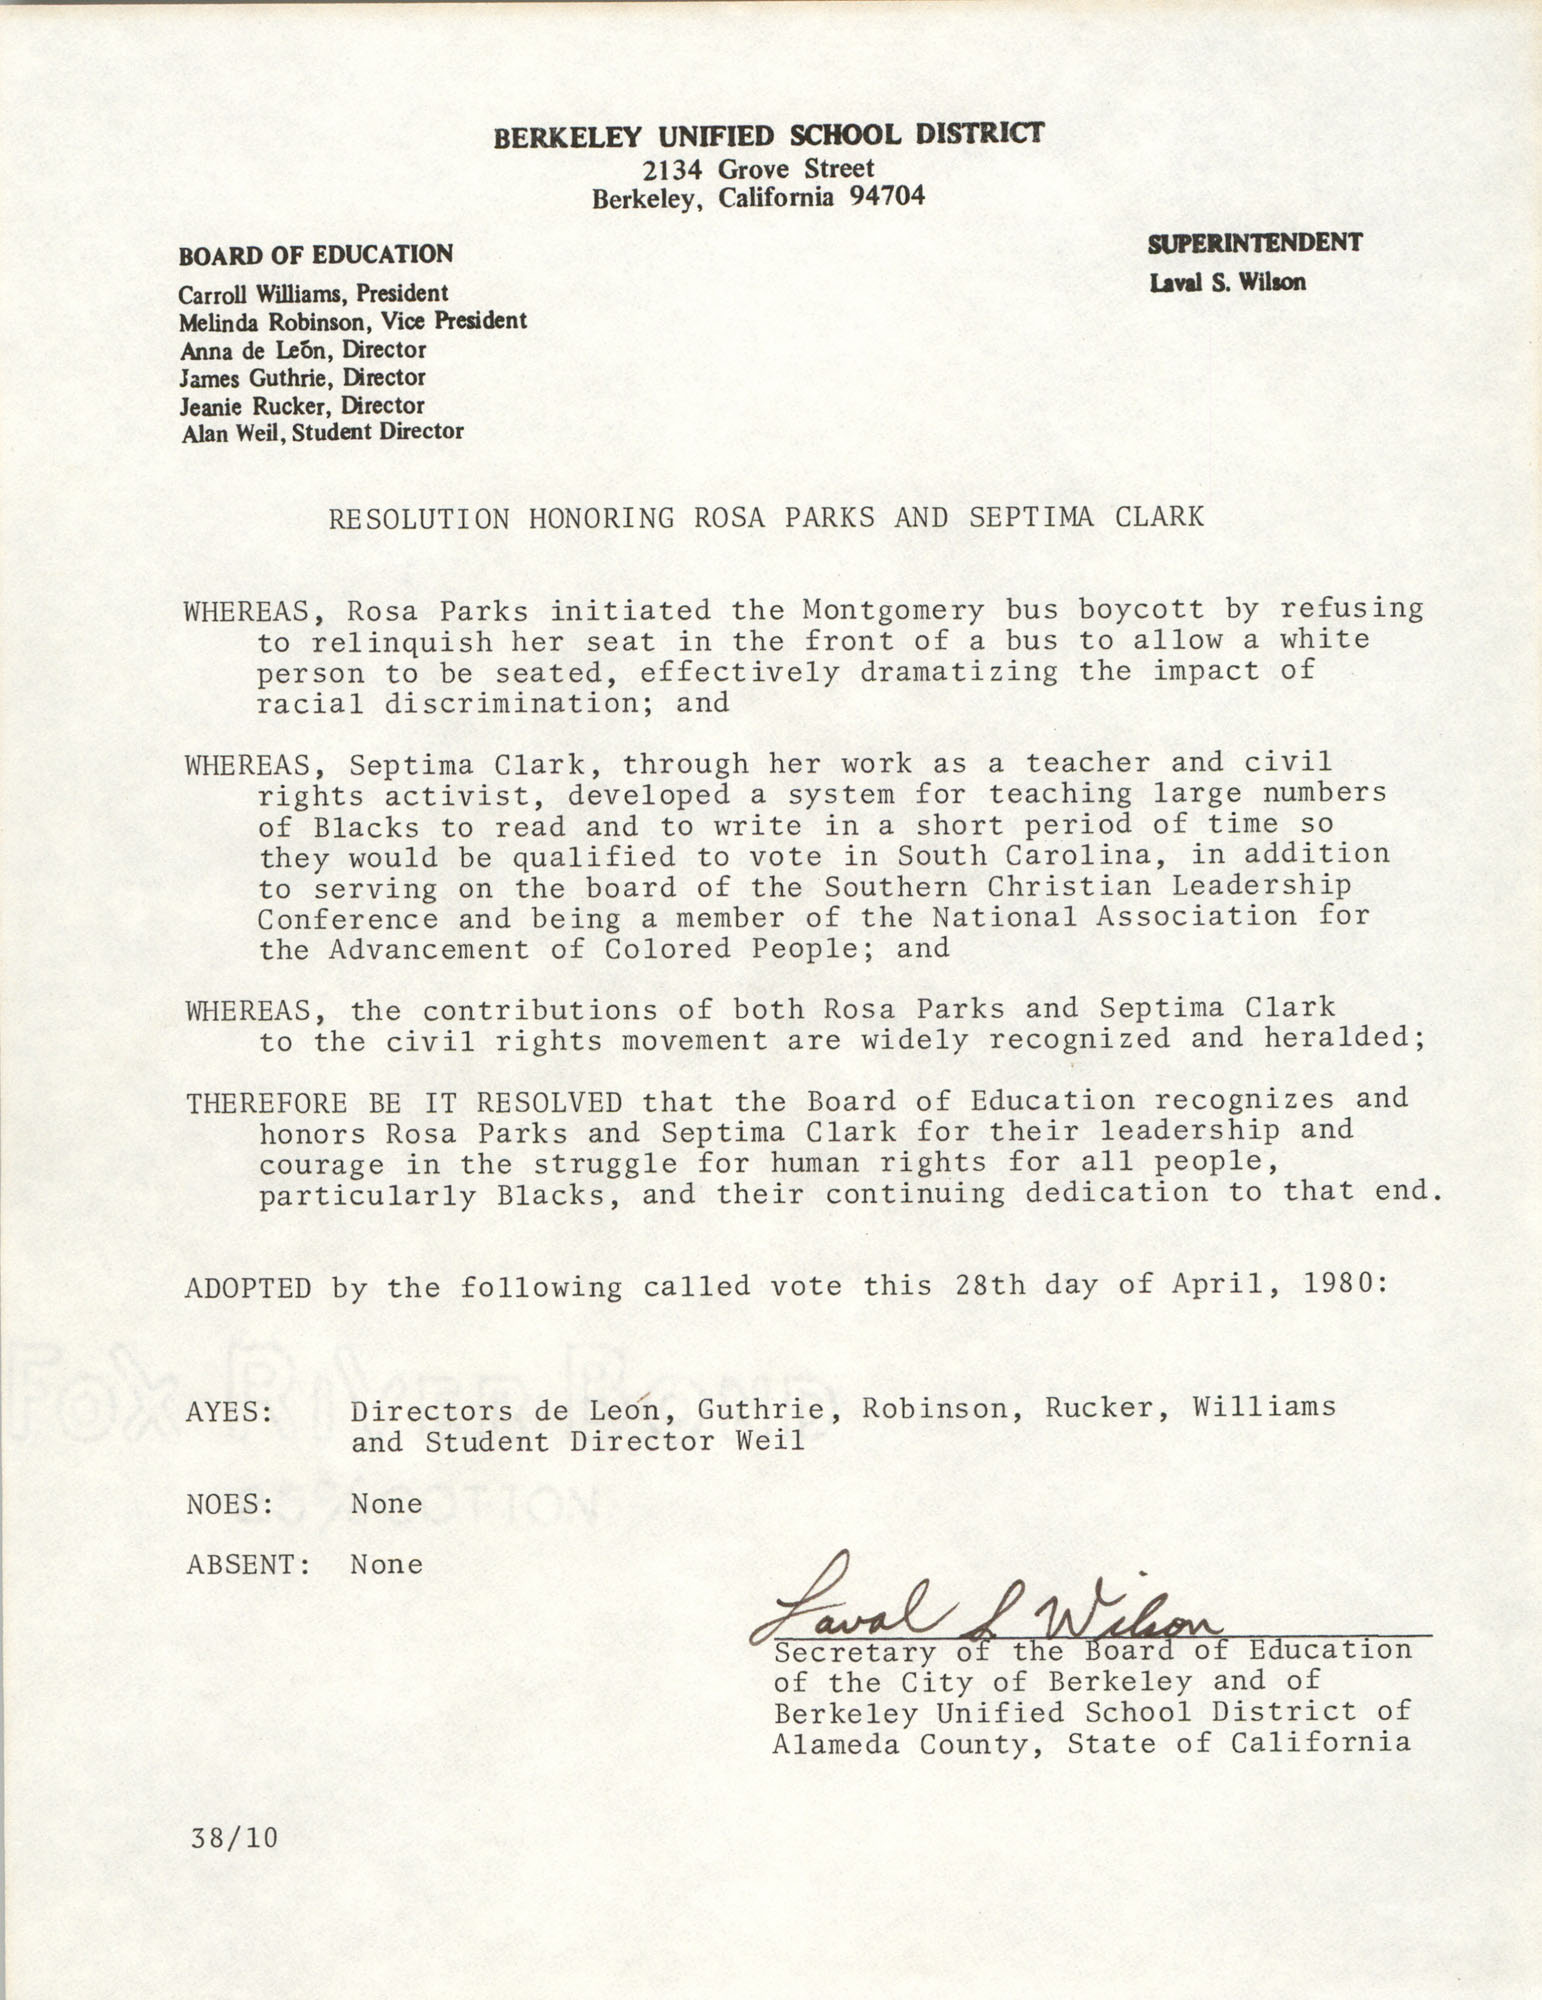 Resolution Honoring Rosa Parks and Septima Clark, April 1980